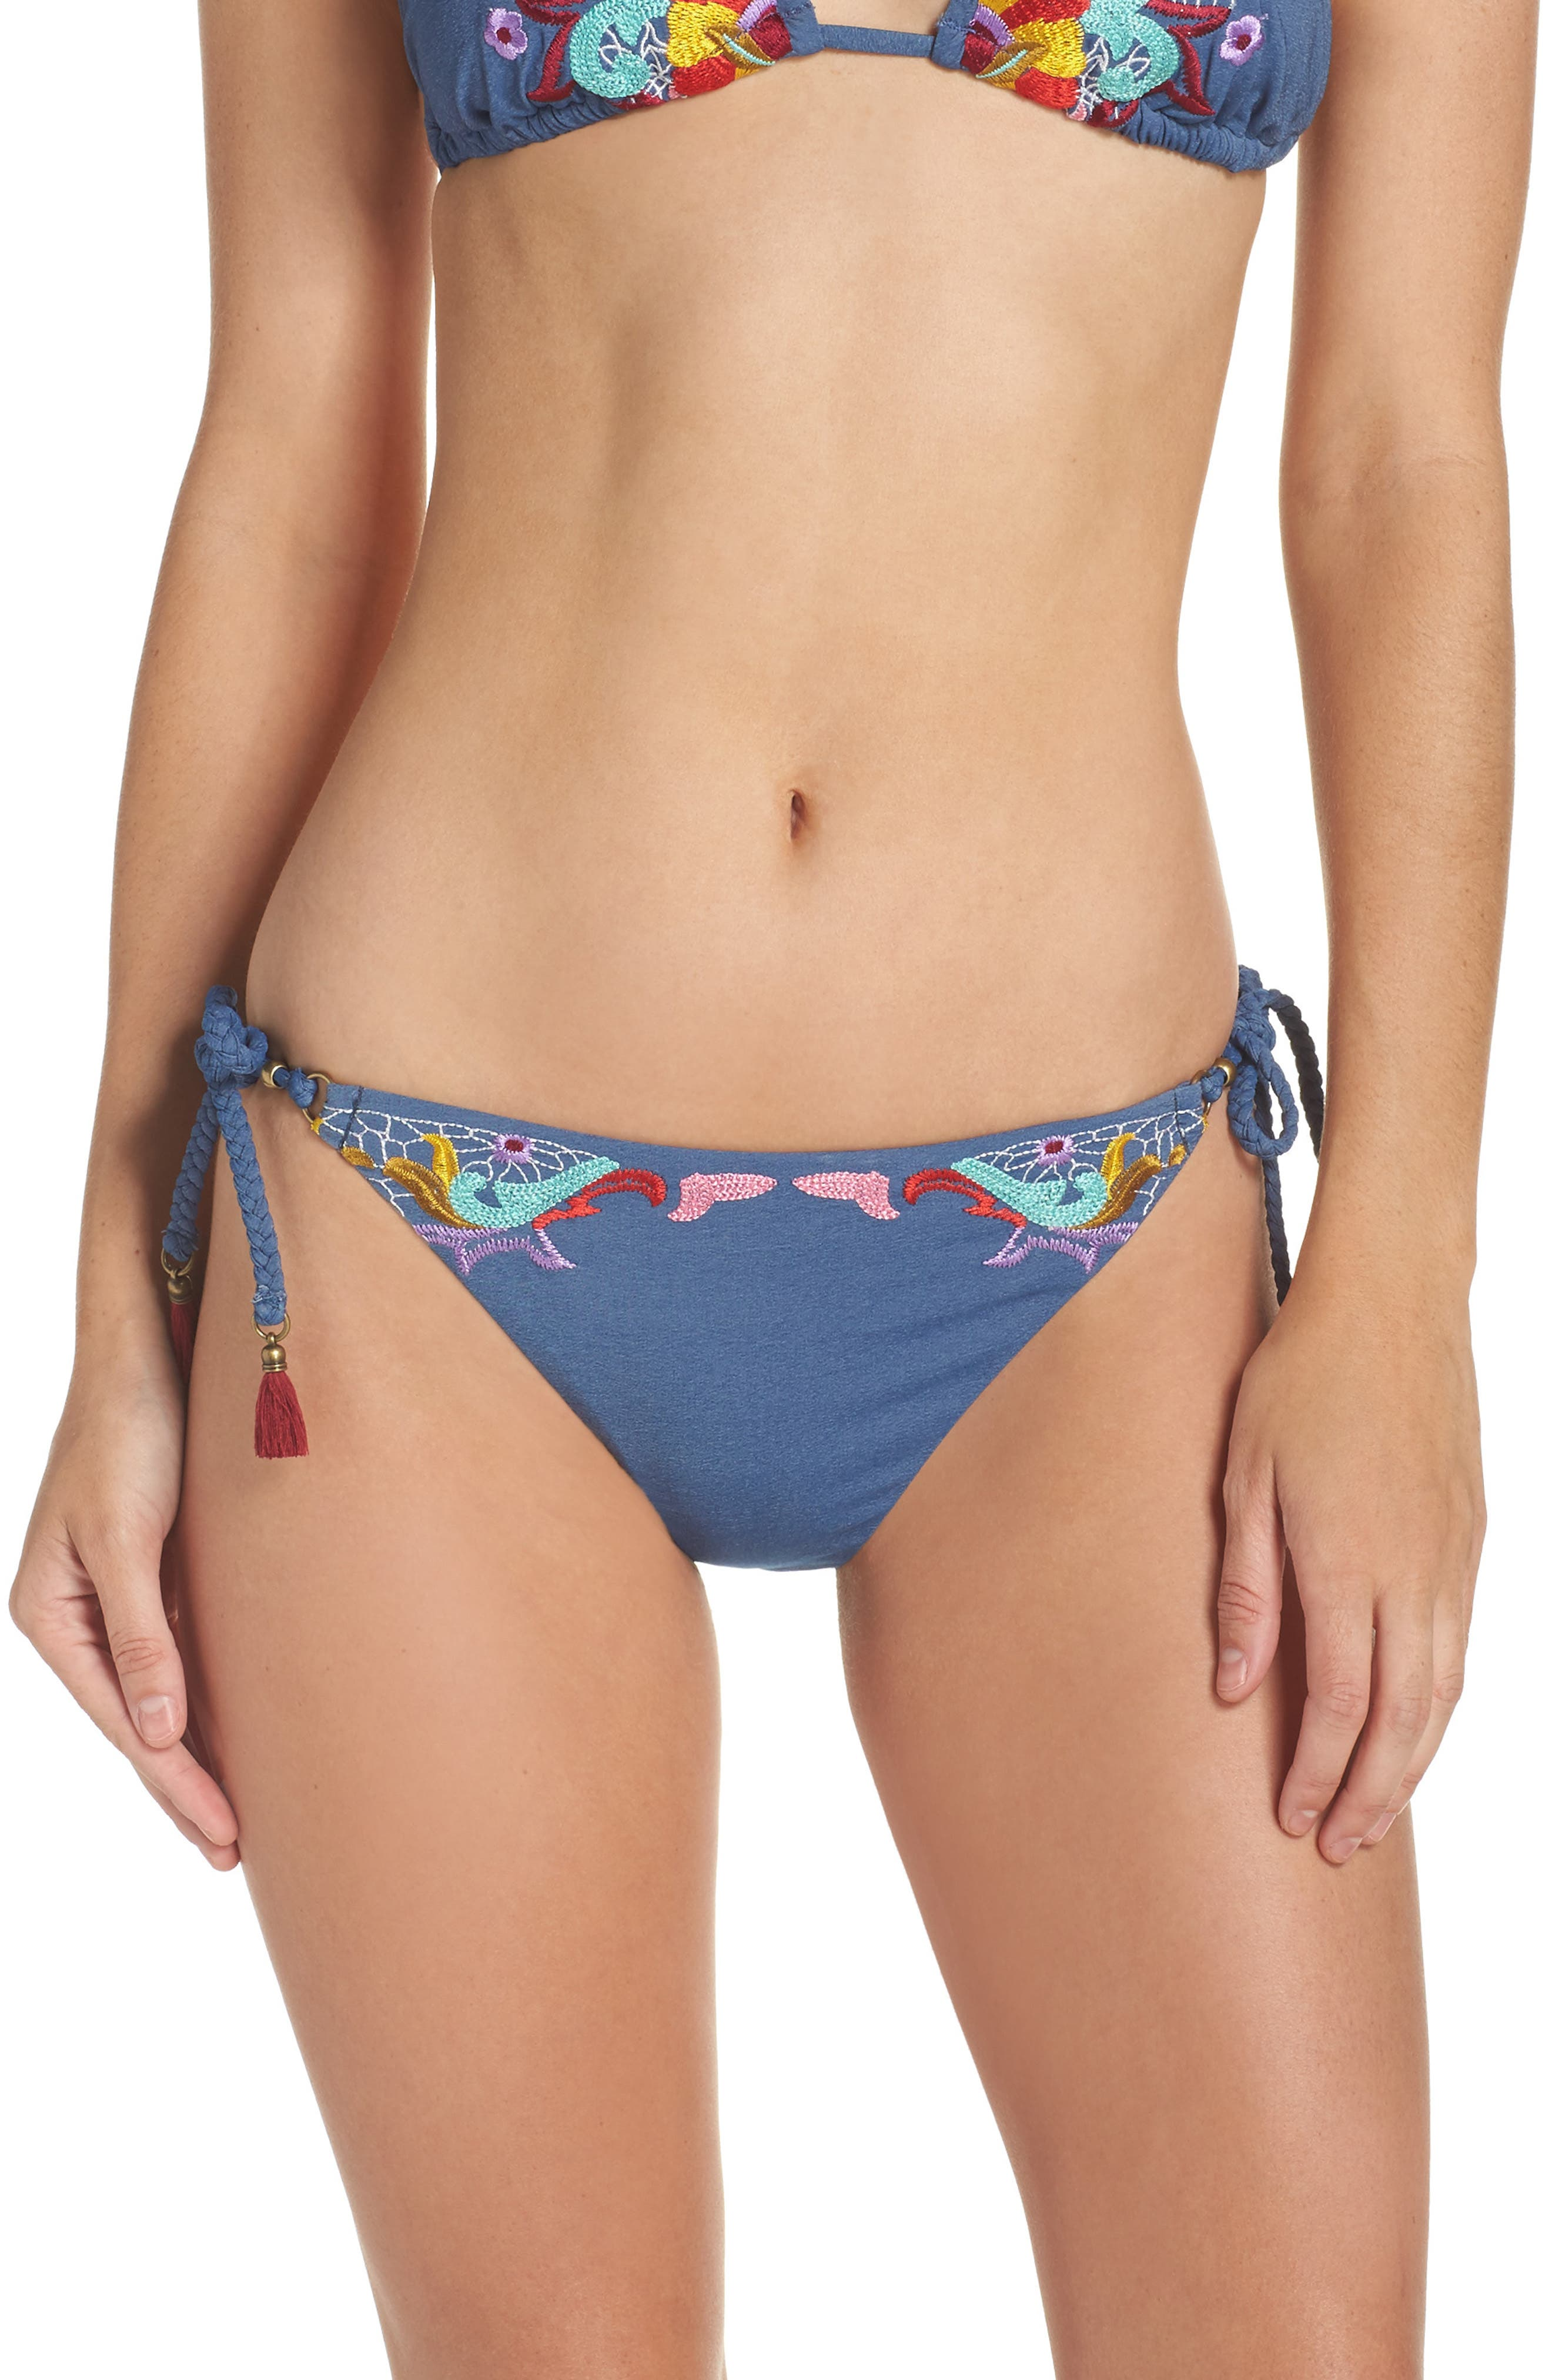 Dazed Denim Vamp Side Tie Bikini Bottoms,                         Main,                         color, Blue Multi